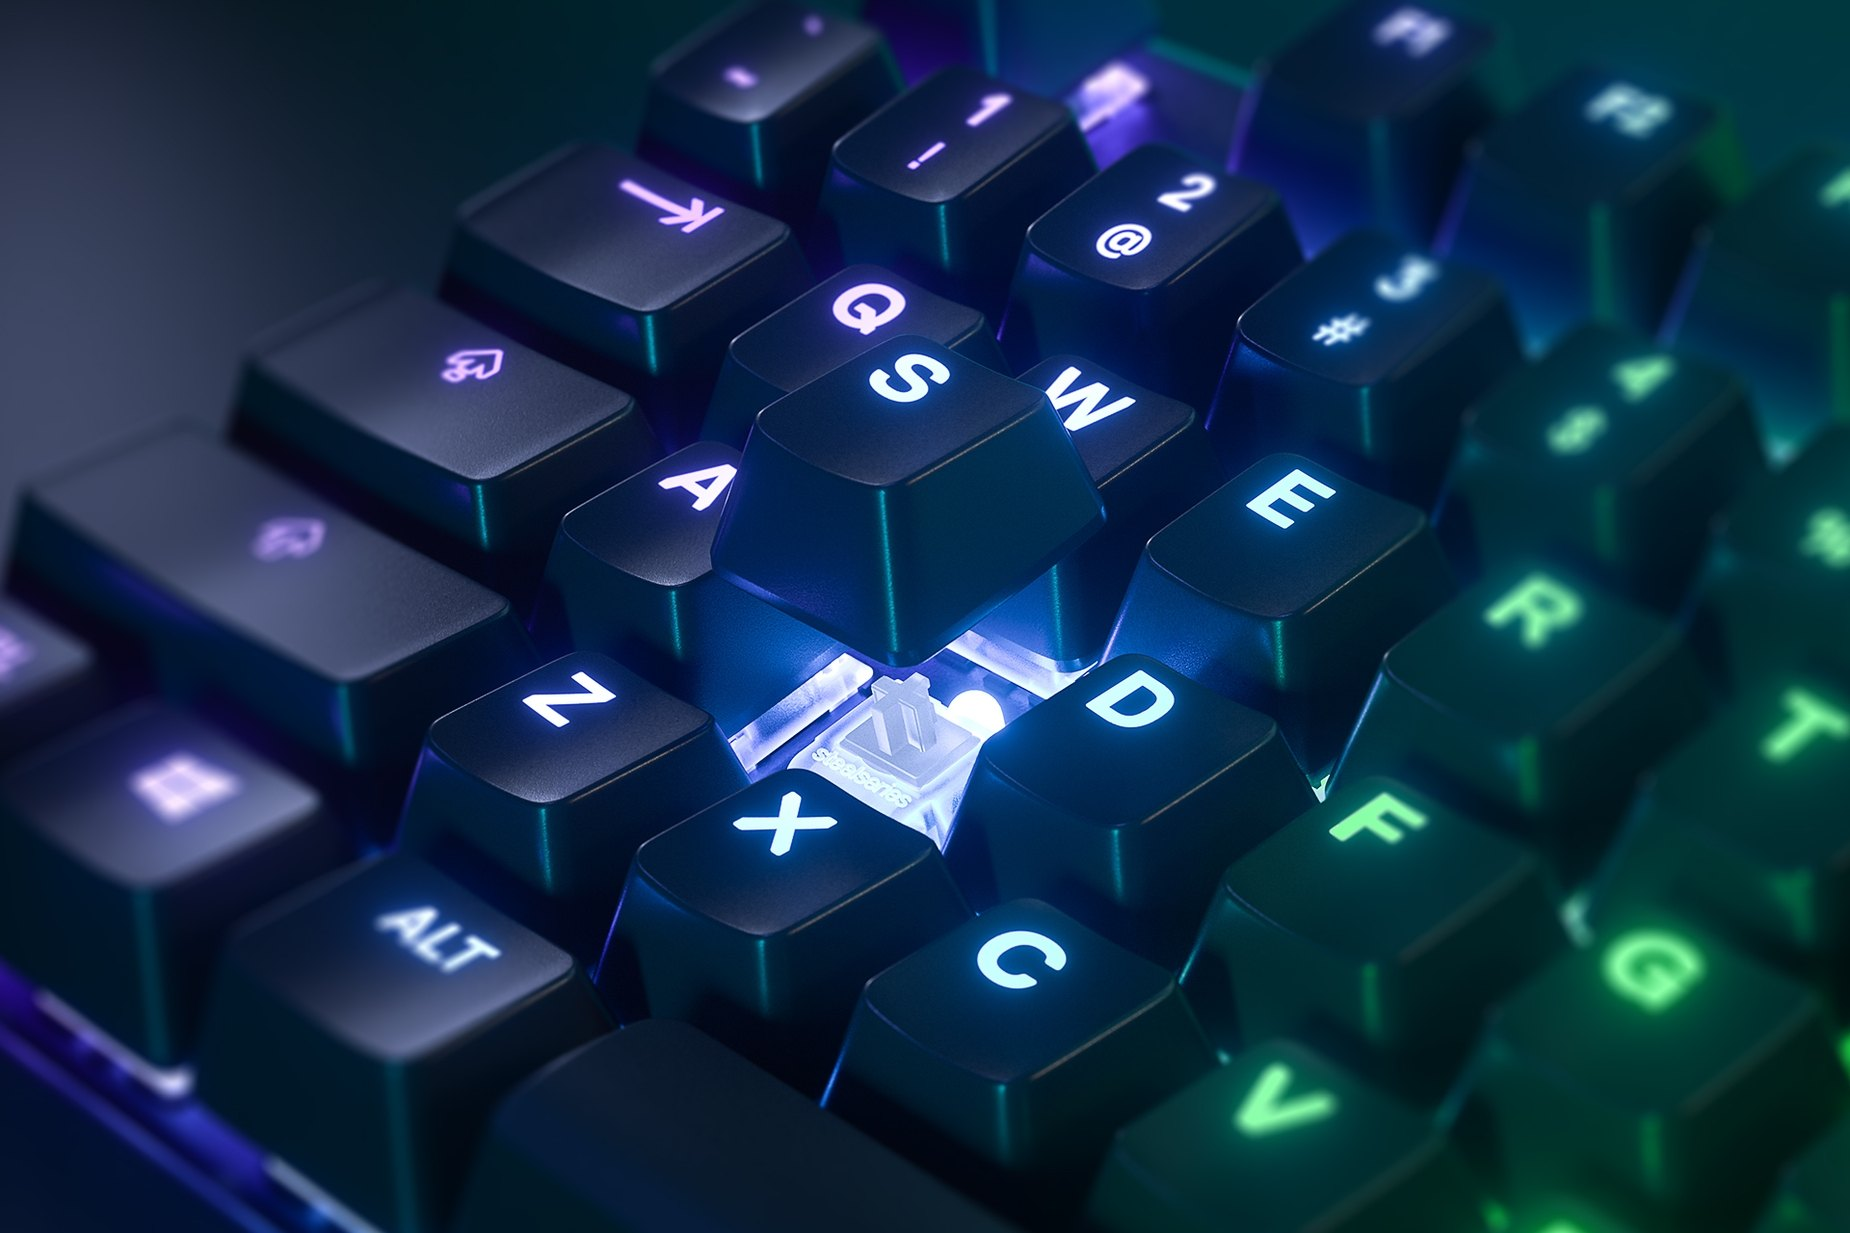 Zoomed in view of a single key on the UK English - Apex Pro gaming keyboard, the key is raised up to show the SteelSeries OmniPoint Adjustable Mechanical Switch underneath